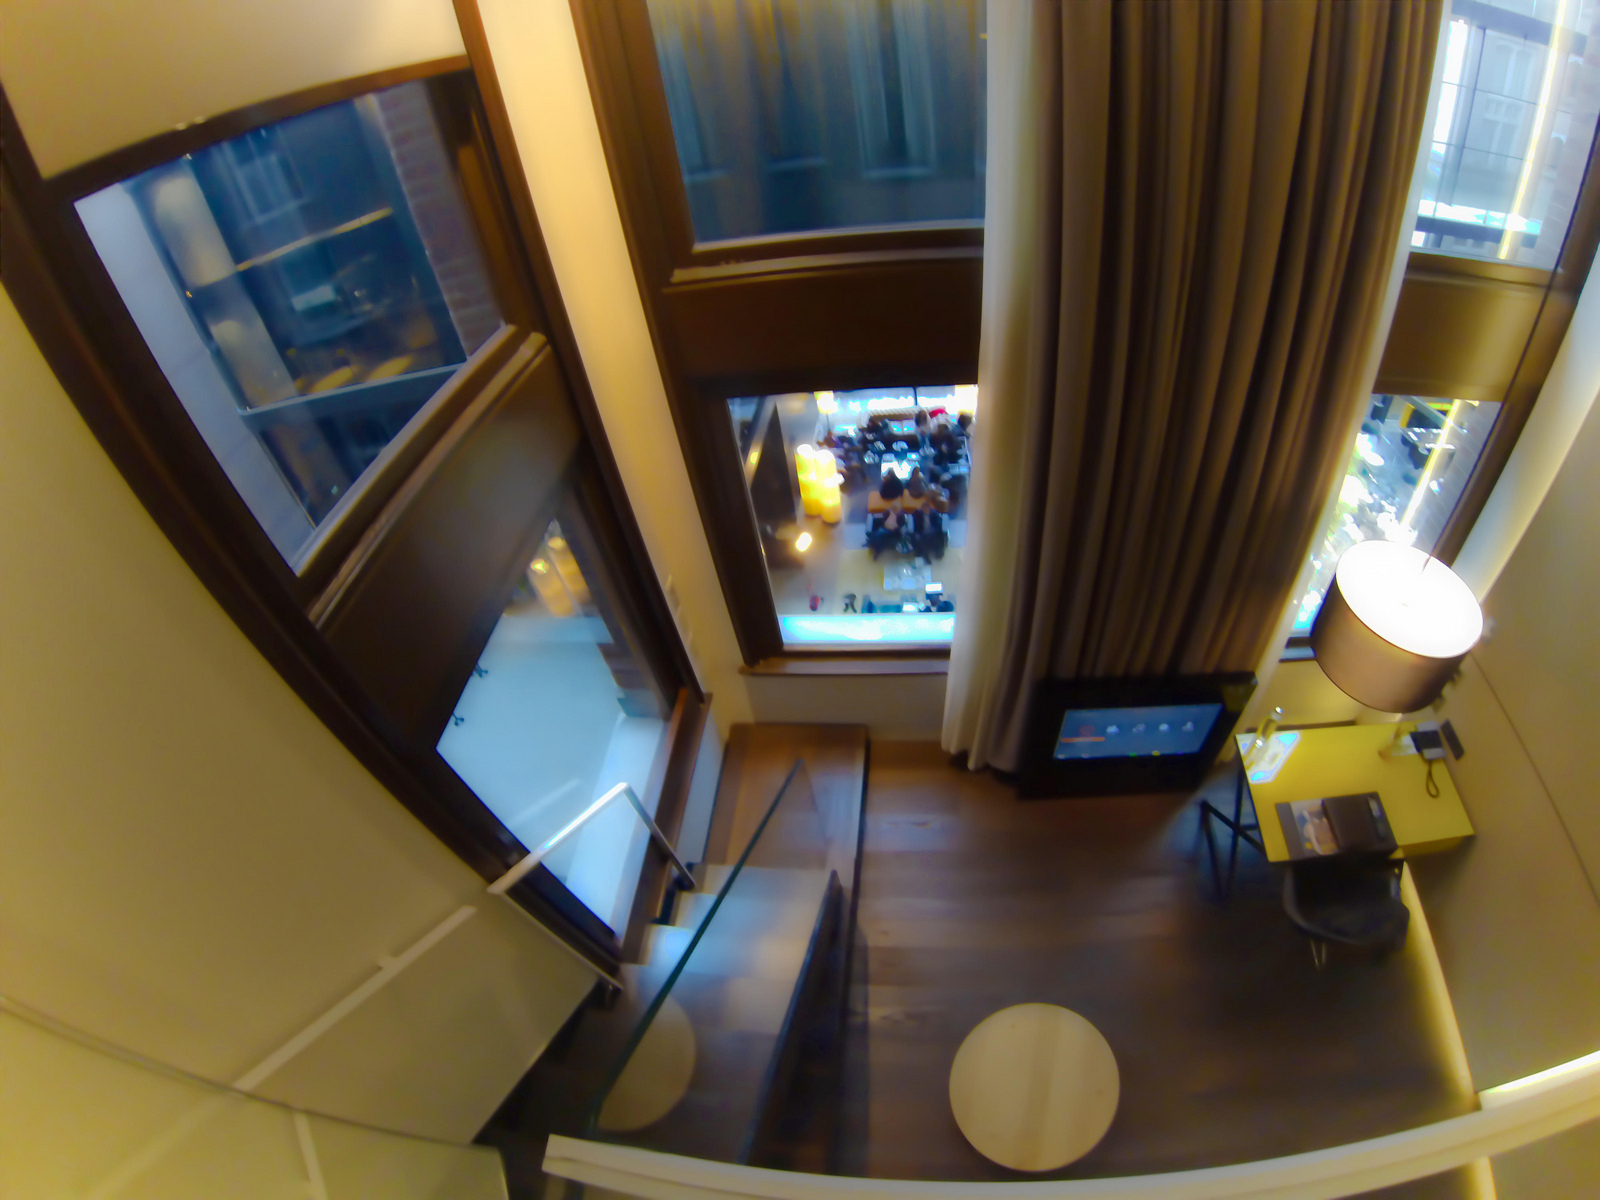 conservatorium-hotel-amsterdam-bedroom-view-of-desk-tv-motorized-drapes-and-shades-overlooking-lobby.jpg